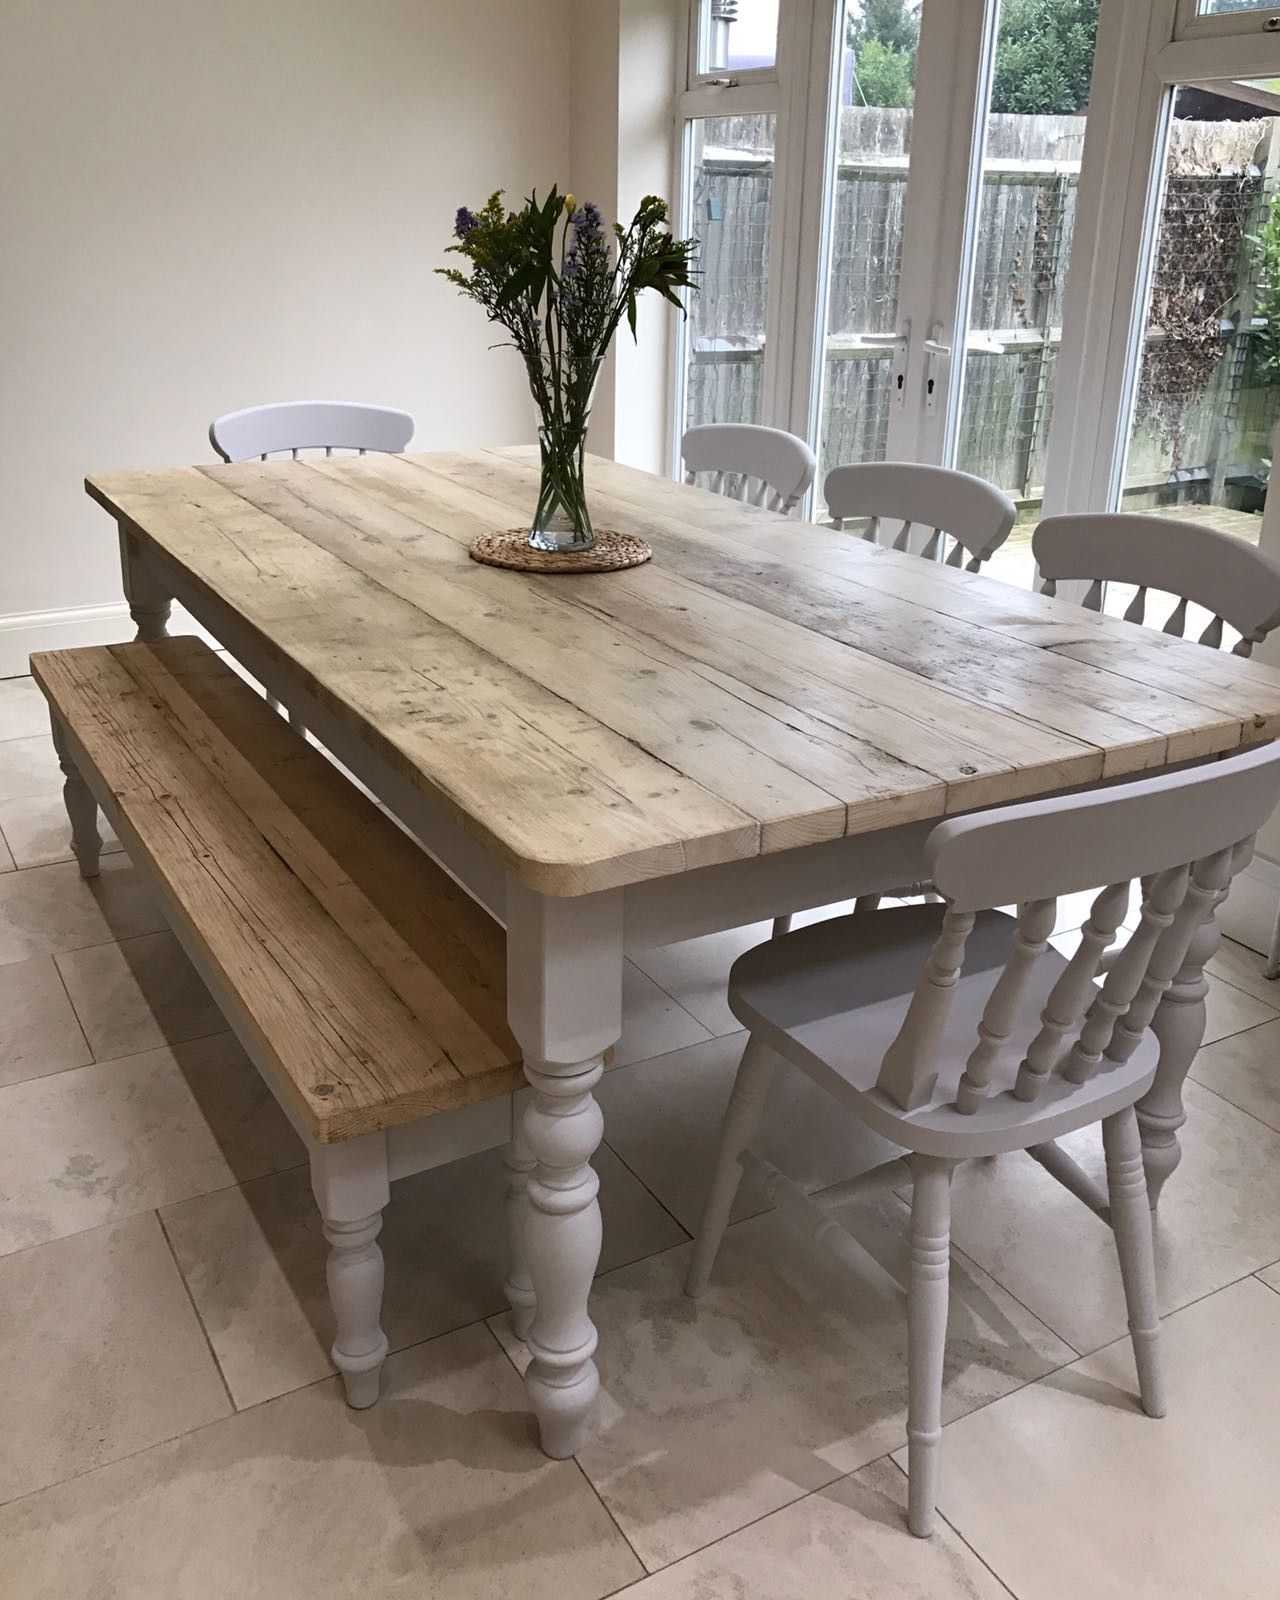 Lime washed farmhouse tables and benches bespoke sizes ...